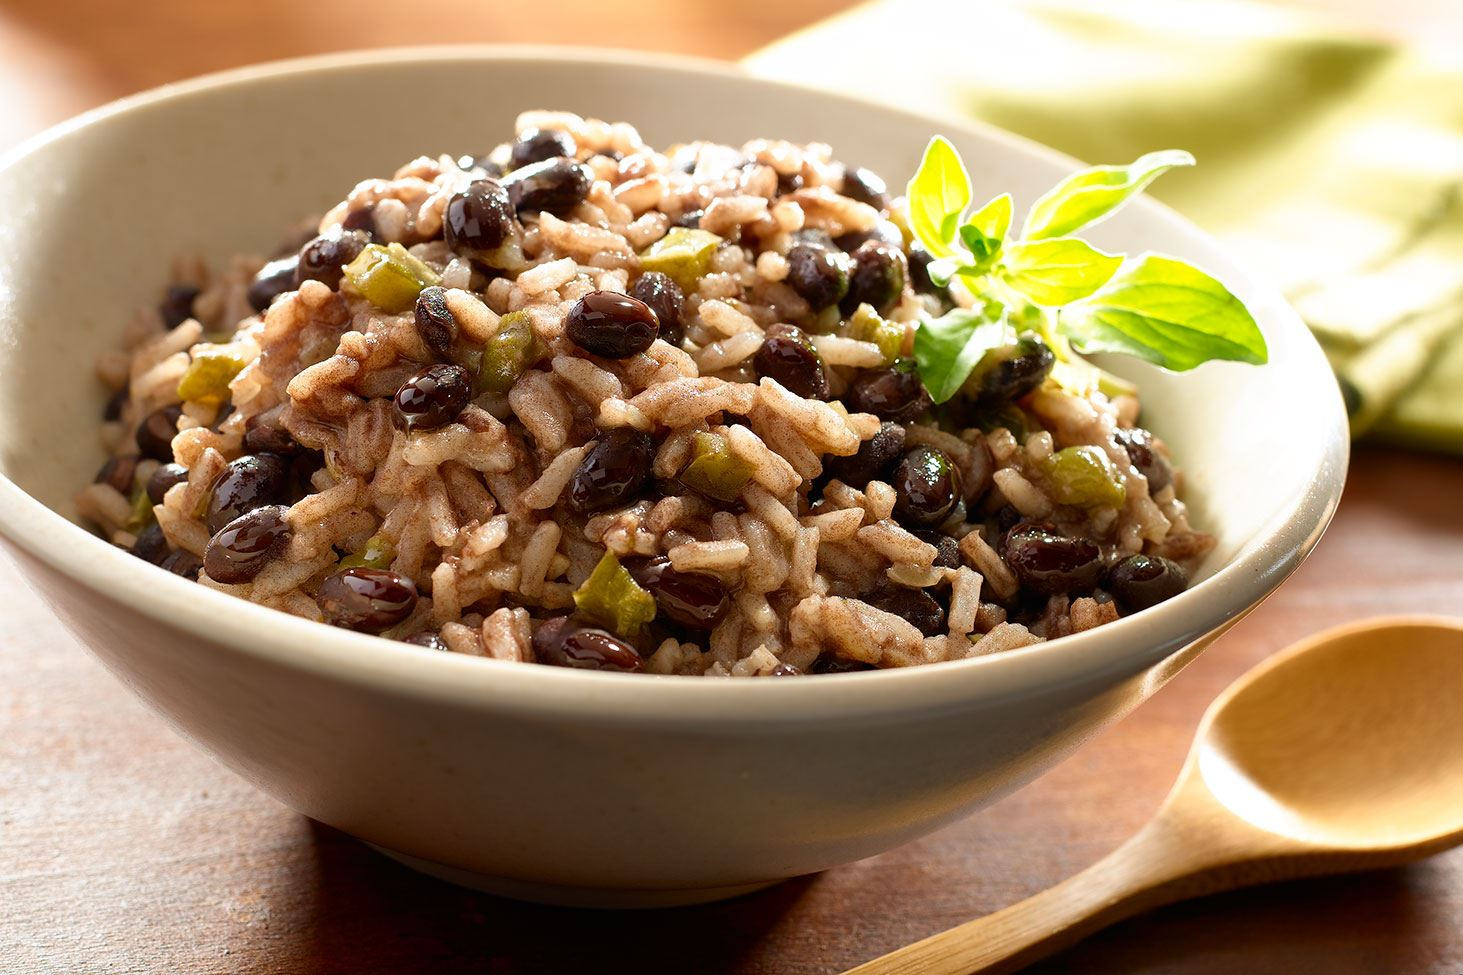 Moros y Cristianos - Black Beans and Rice